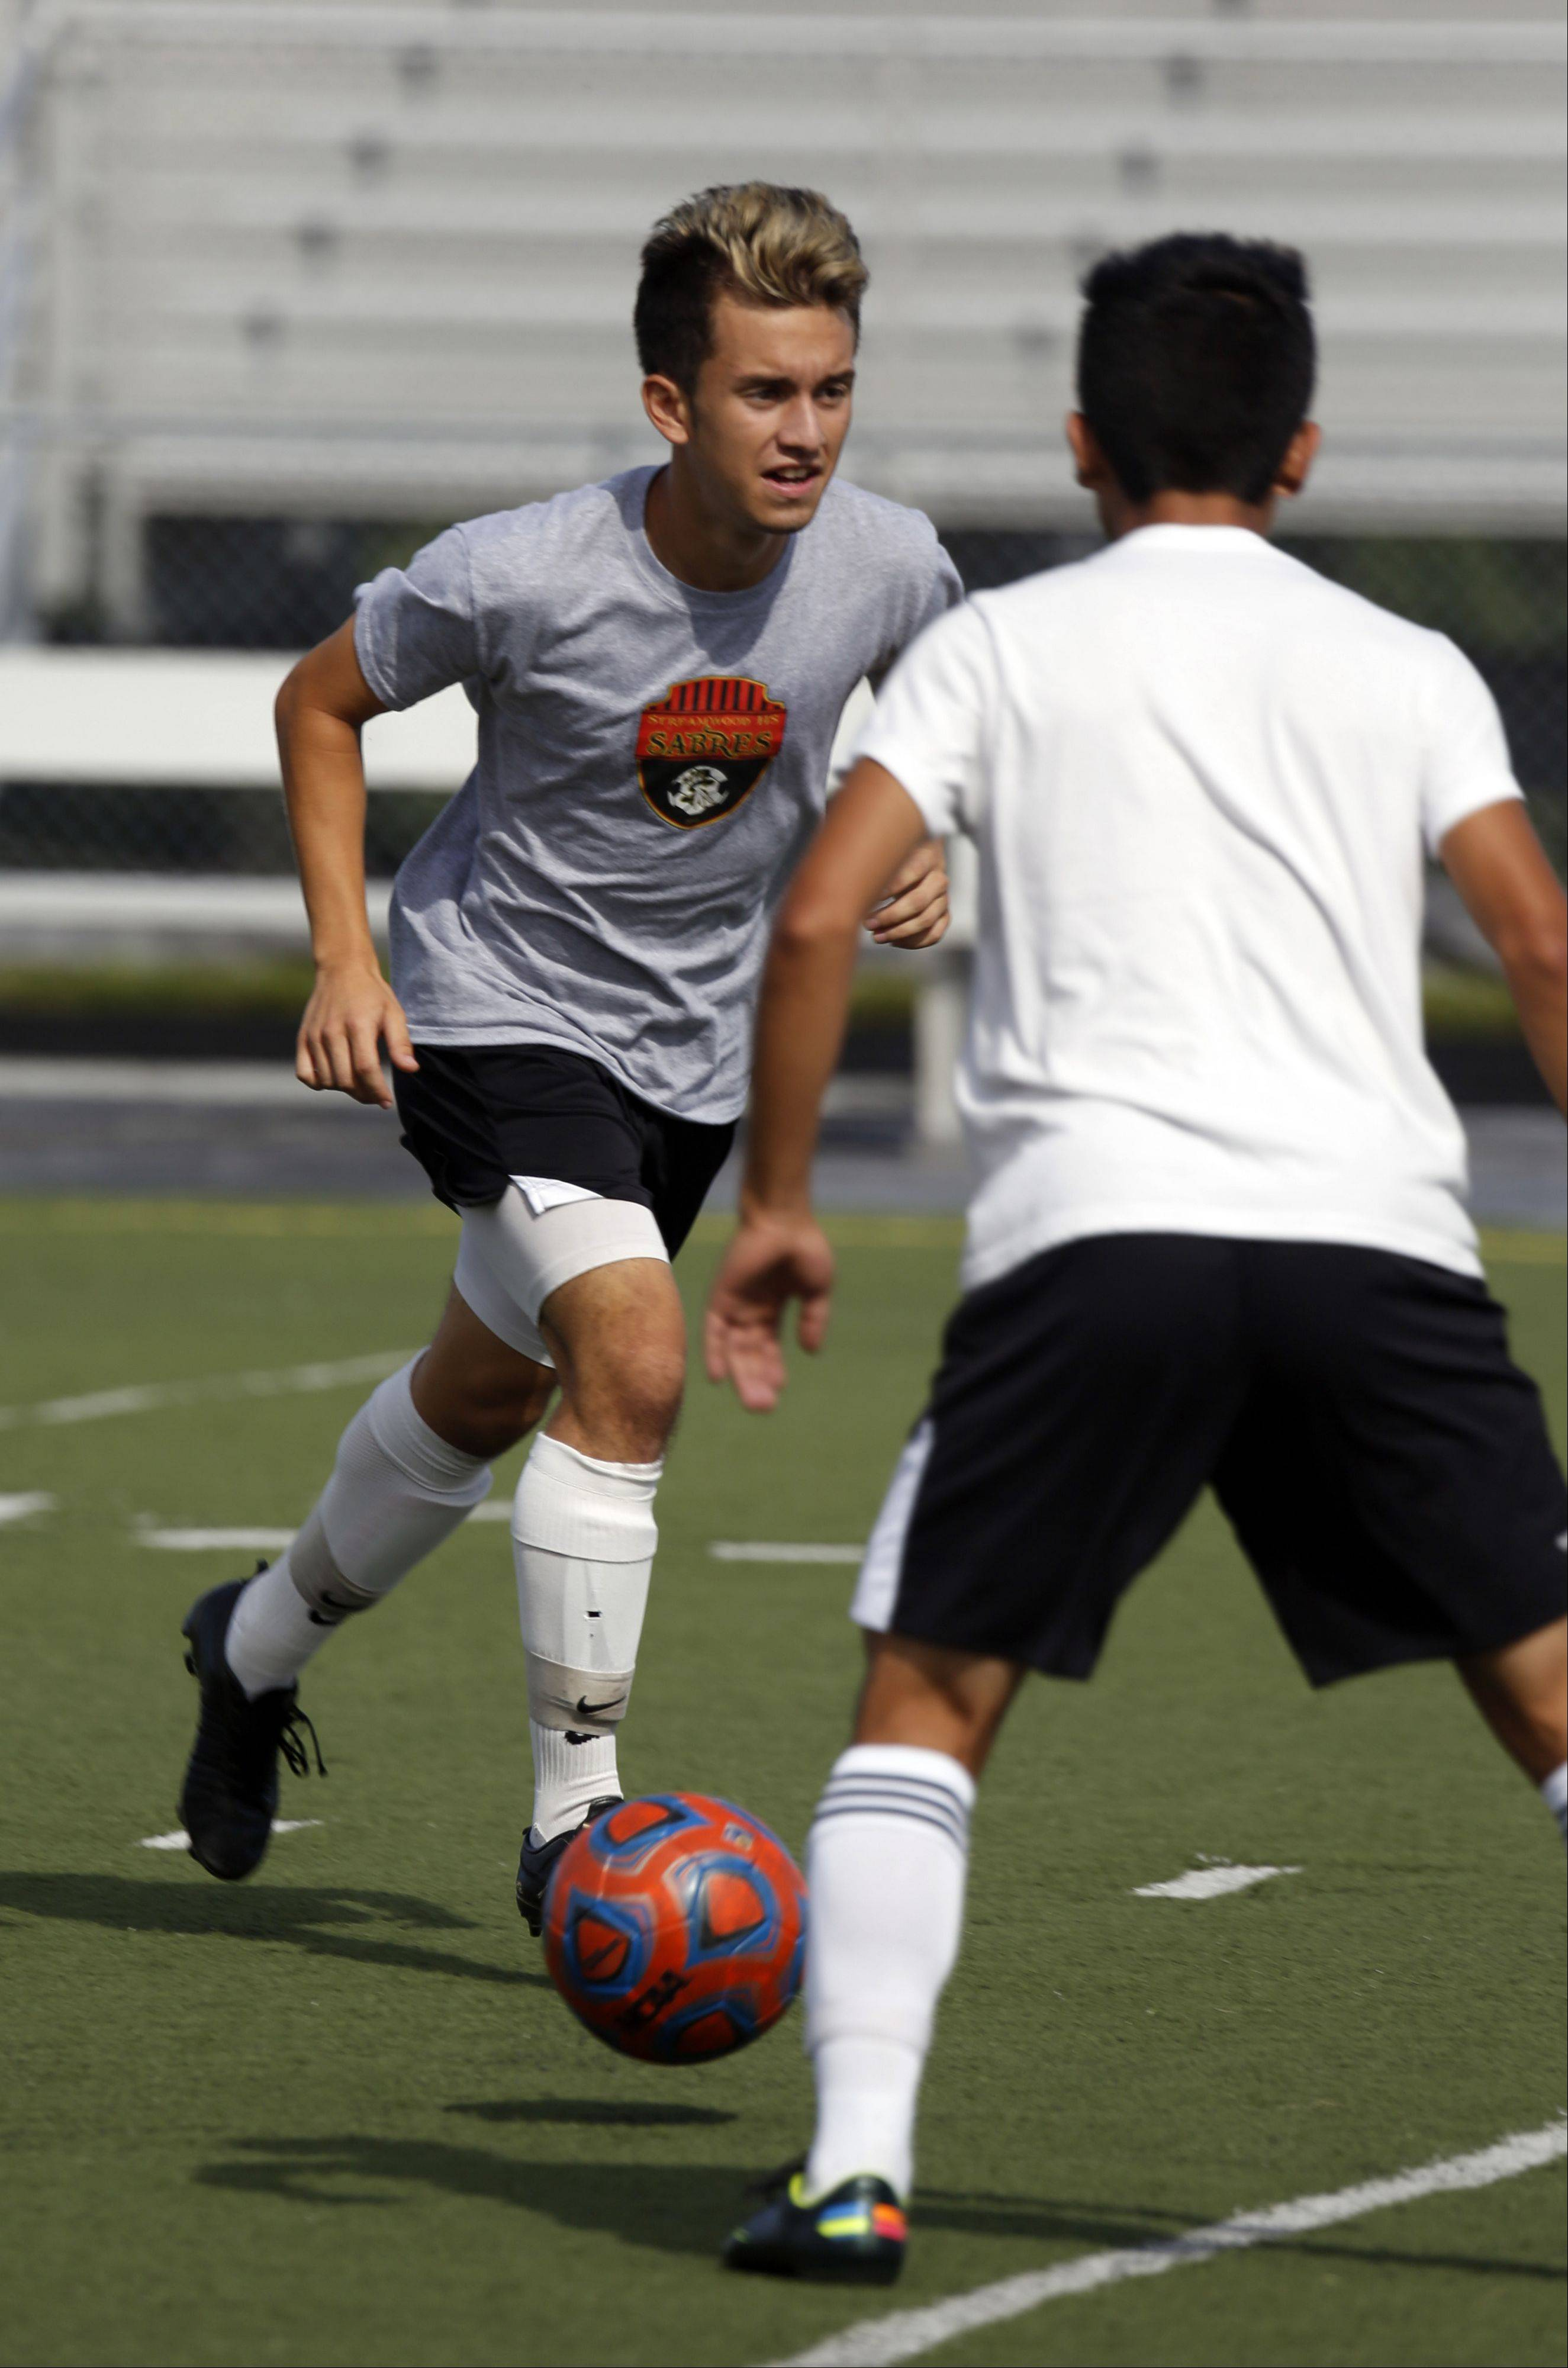 Streamwood senior Nestor Ascencio is the Sabres' first all-American soccer player.